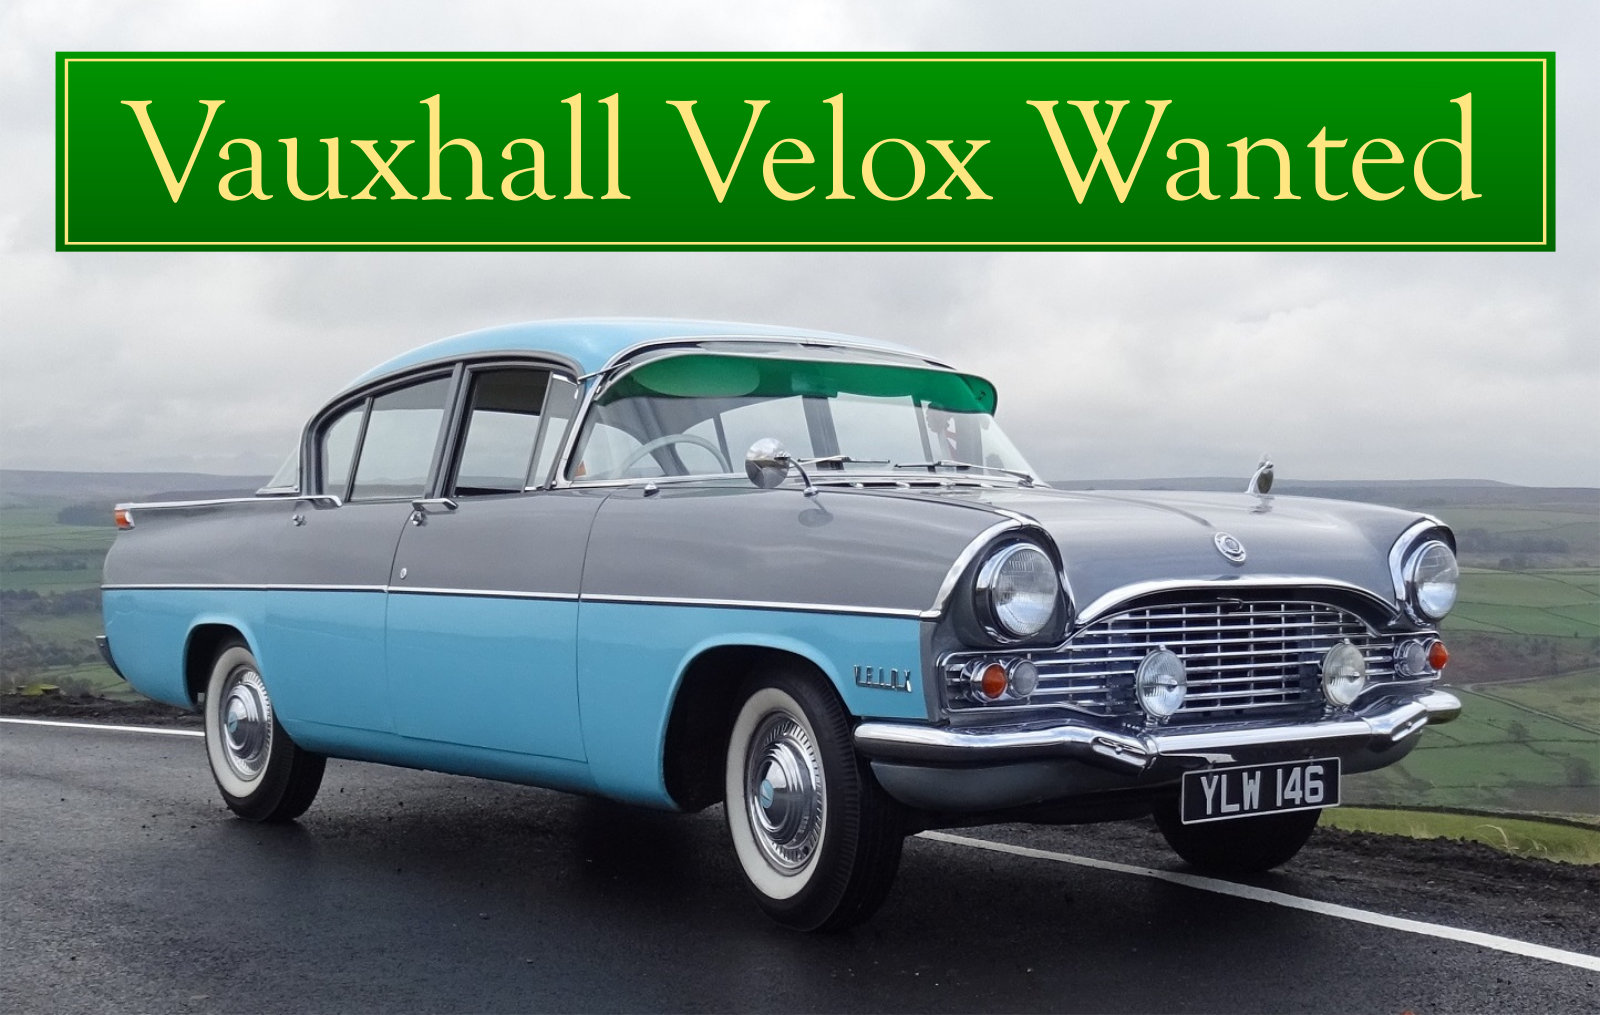 FORD ZODIAC MK3 WANTED, CLASSIC CARS WANTED, INSTANT PAYMENT Wanted (picture 6 of 6)